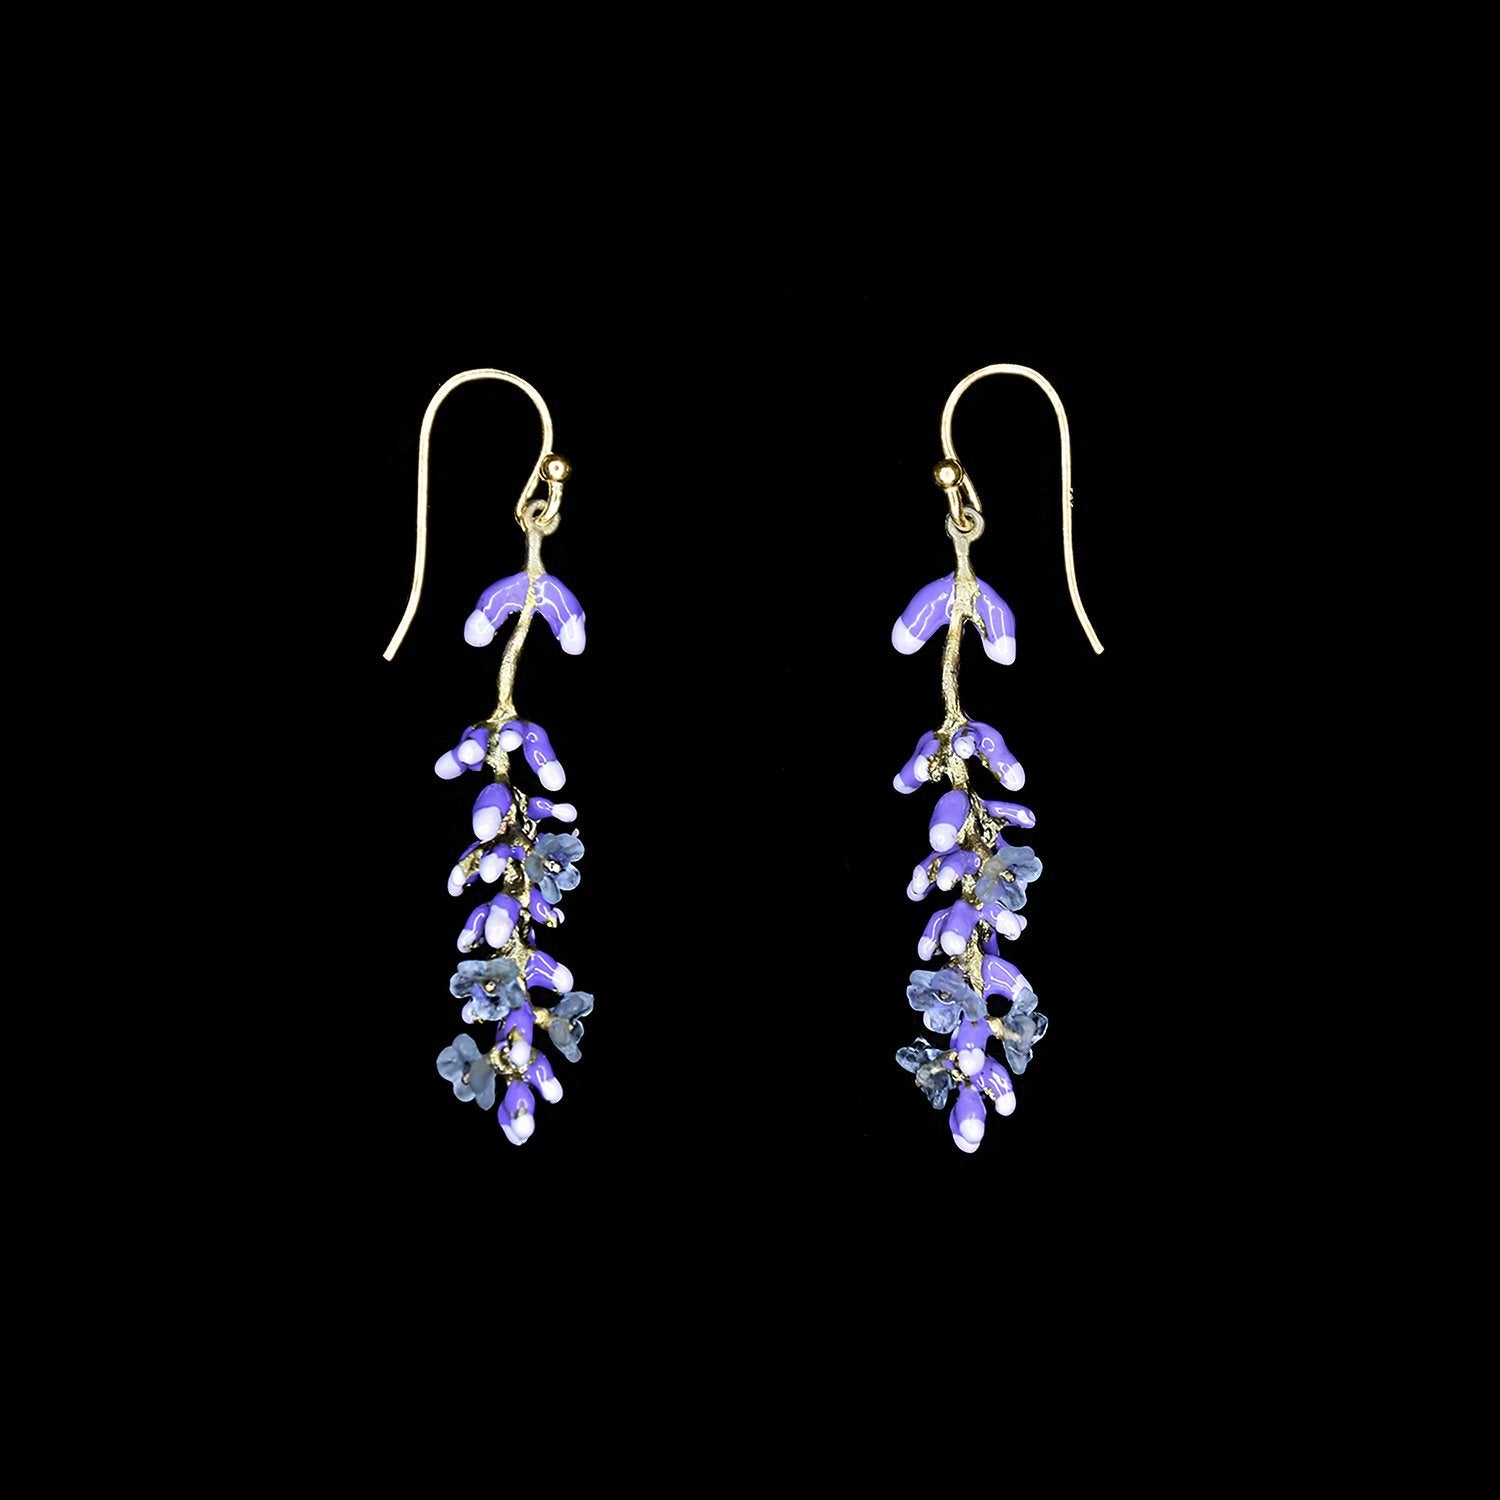 Lavender Earrings - Wire